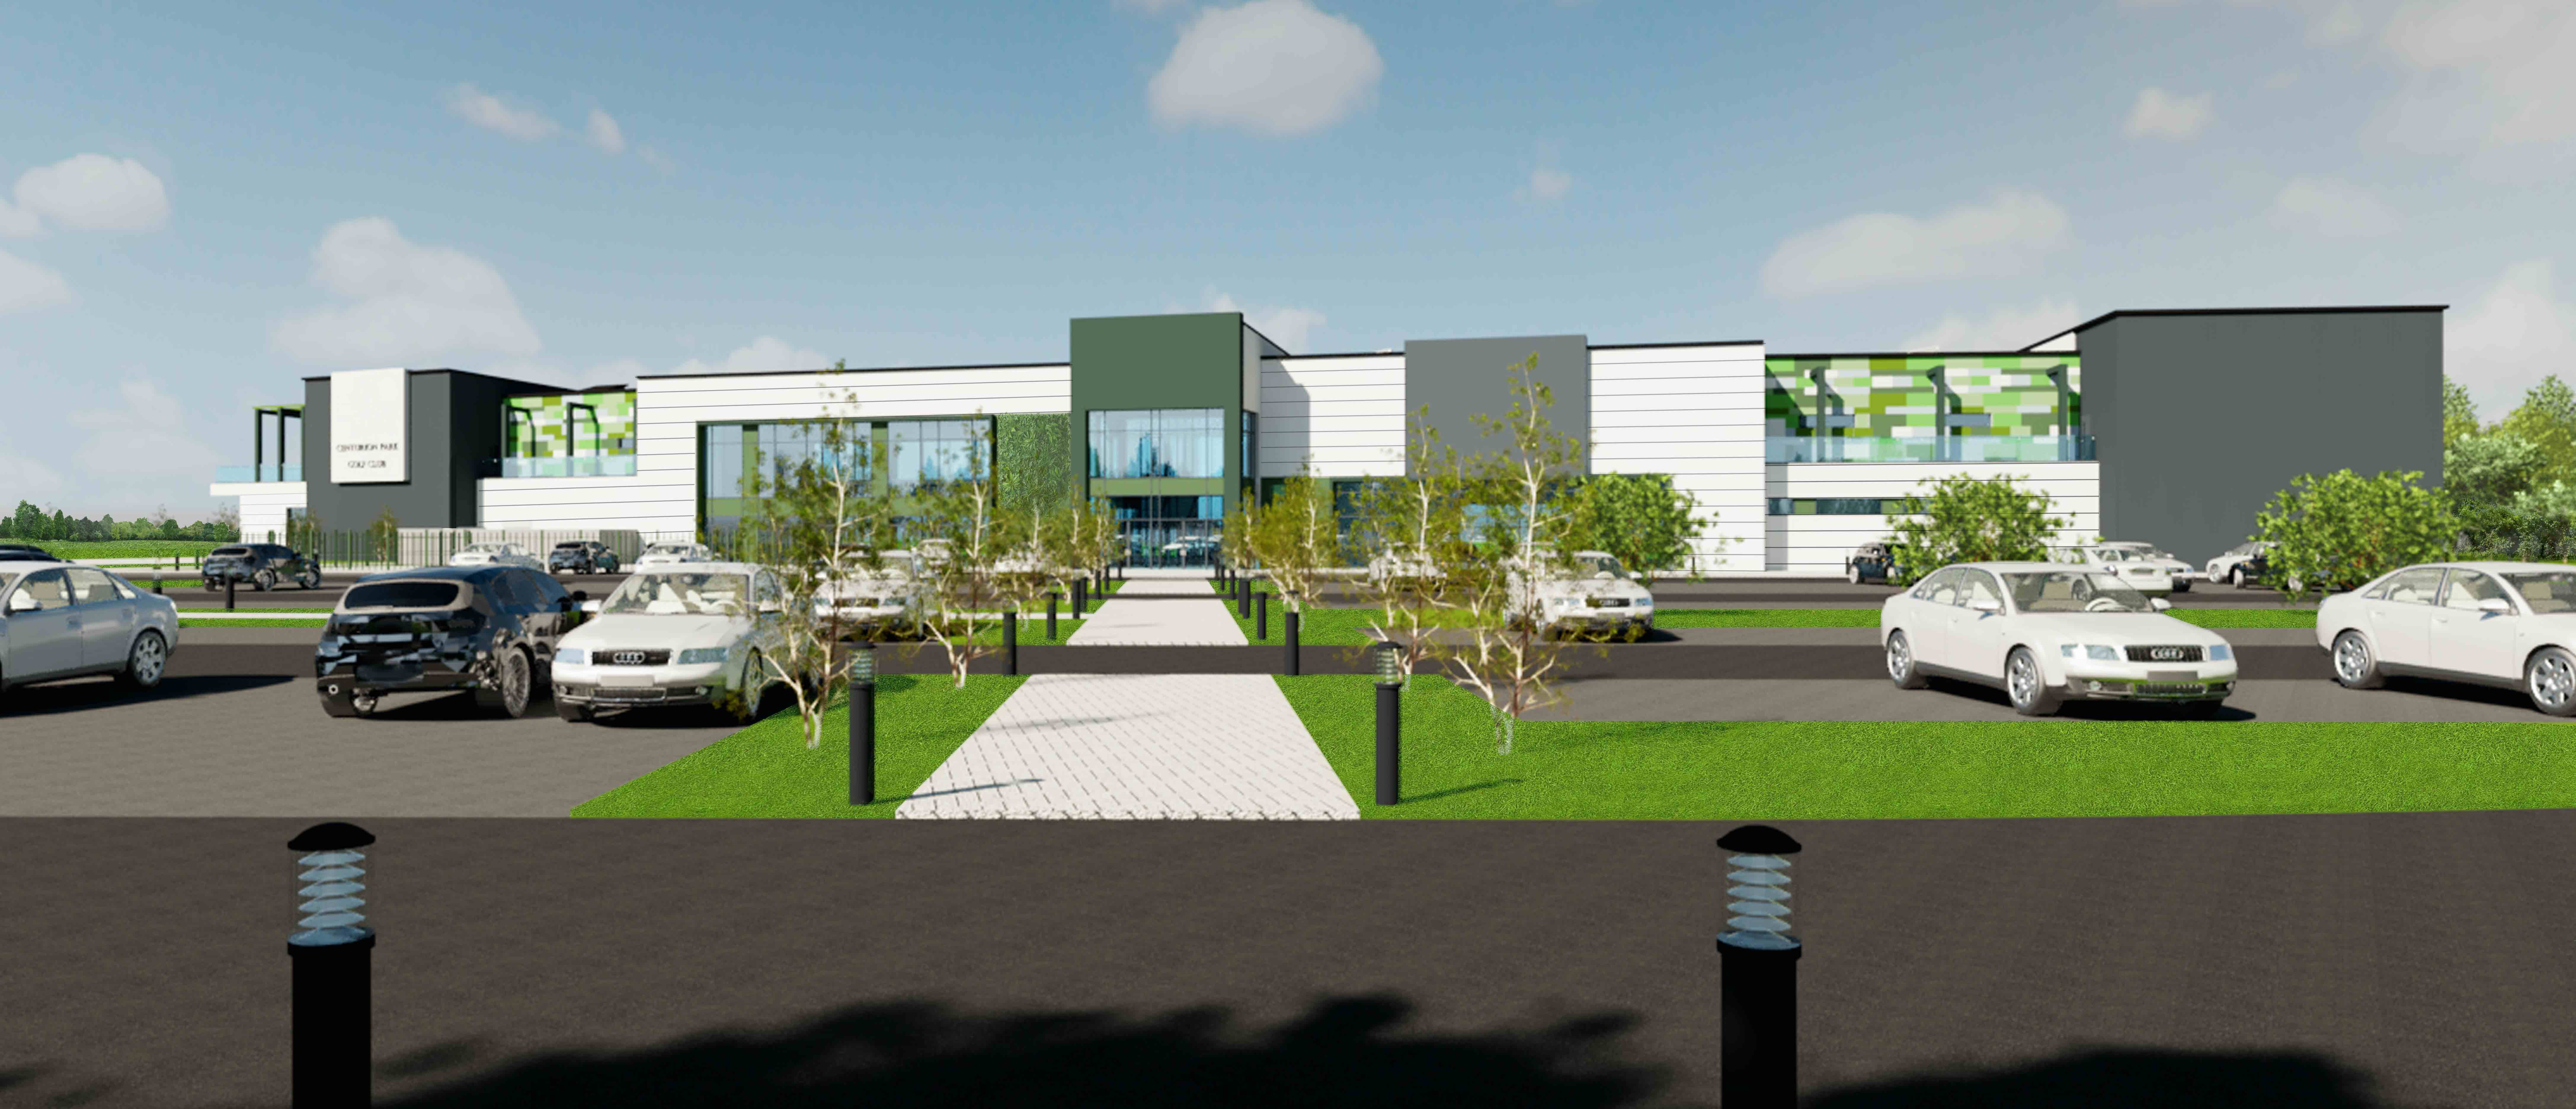 PLANNING APPLICATION FOR £13m WALLSEND GOLF CENTRE